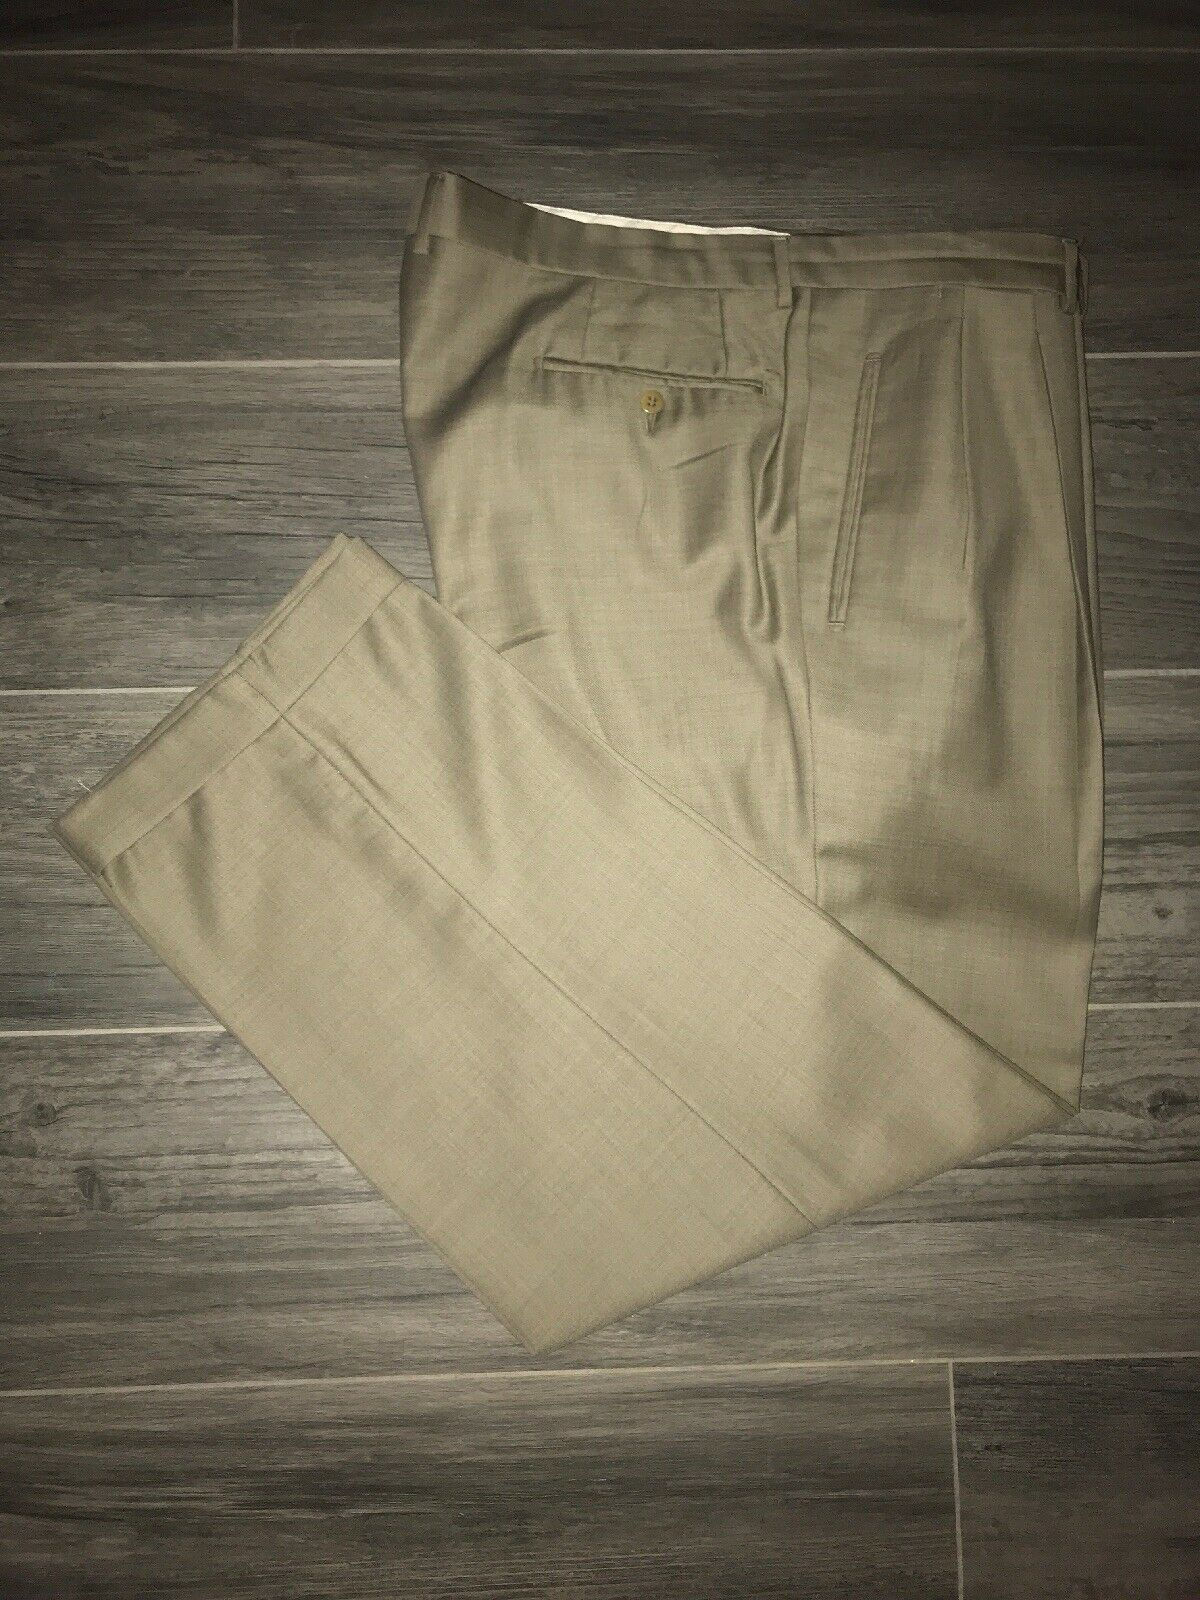 Ermenegildo Zegna Brown Pleated Front Cuffed Dress Pants Size 41x30 EUC